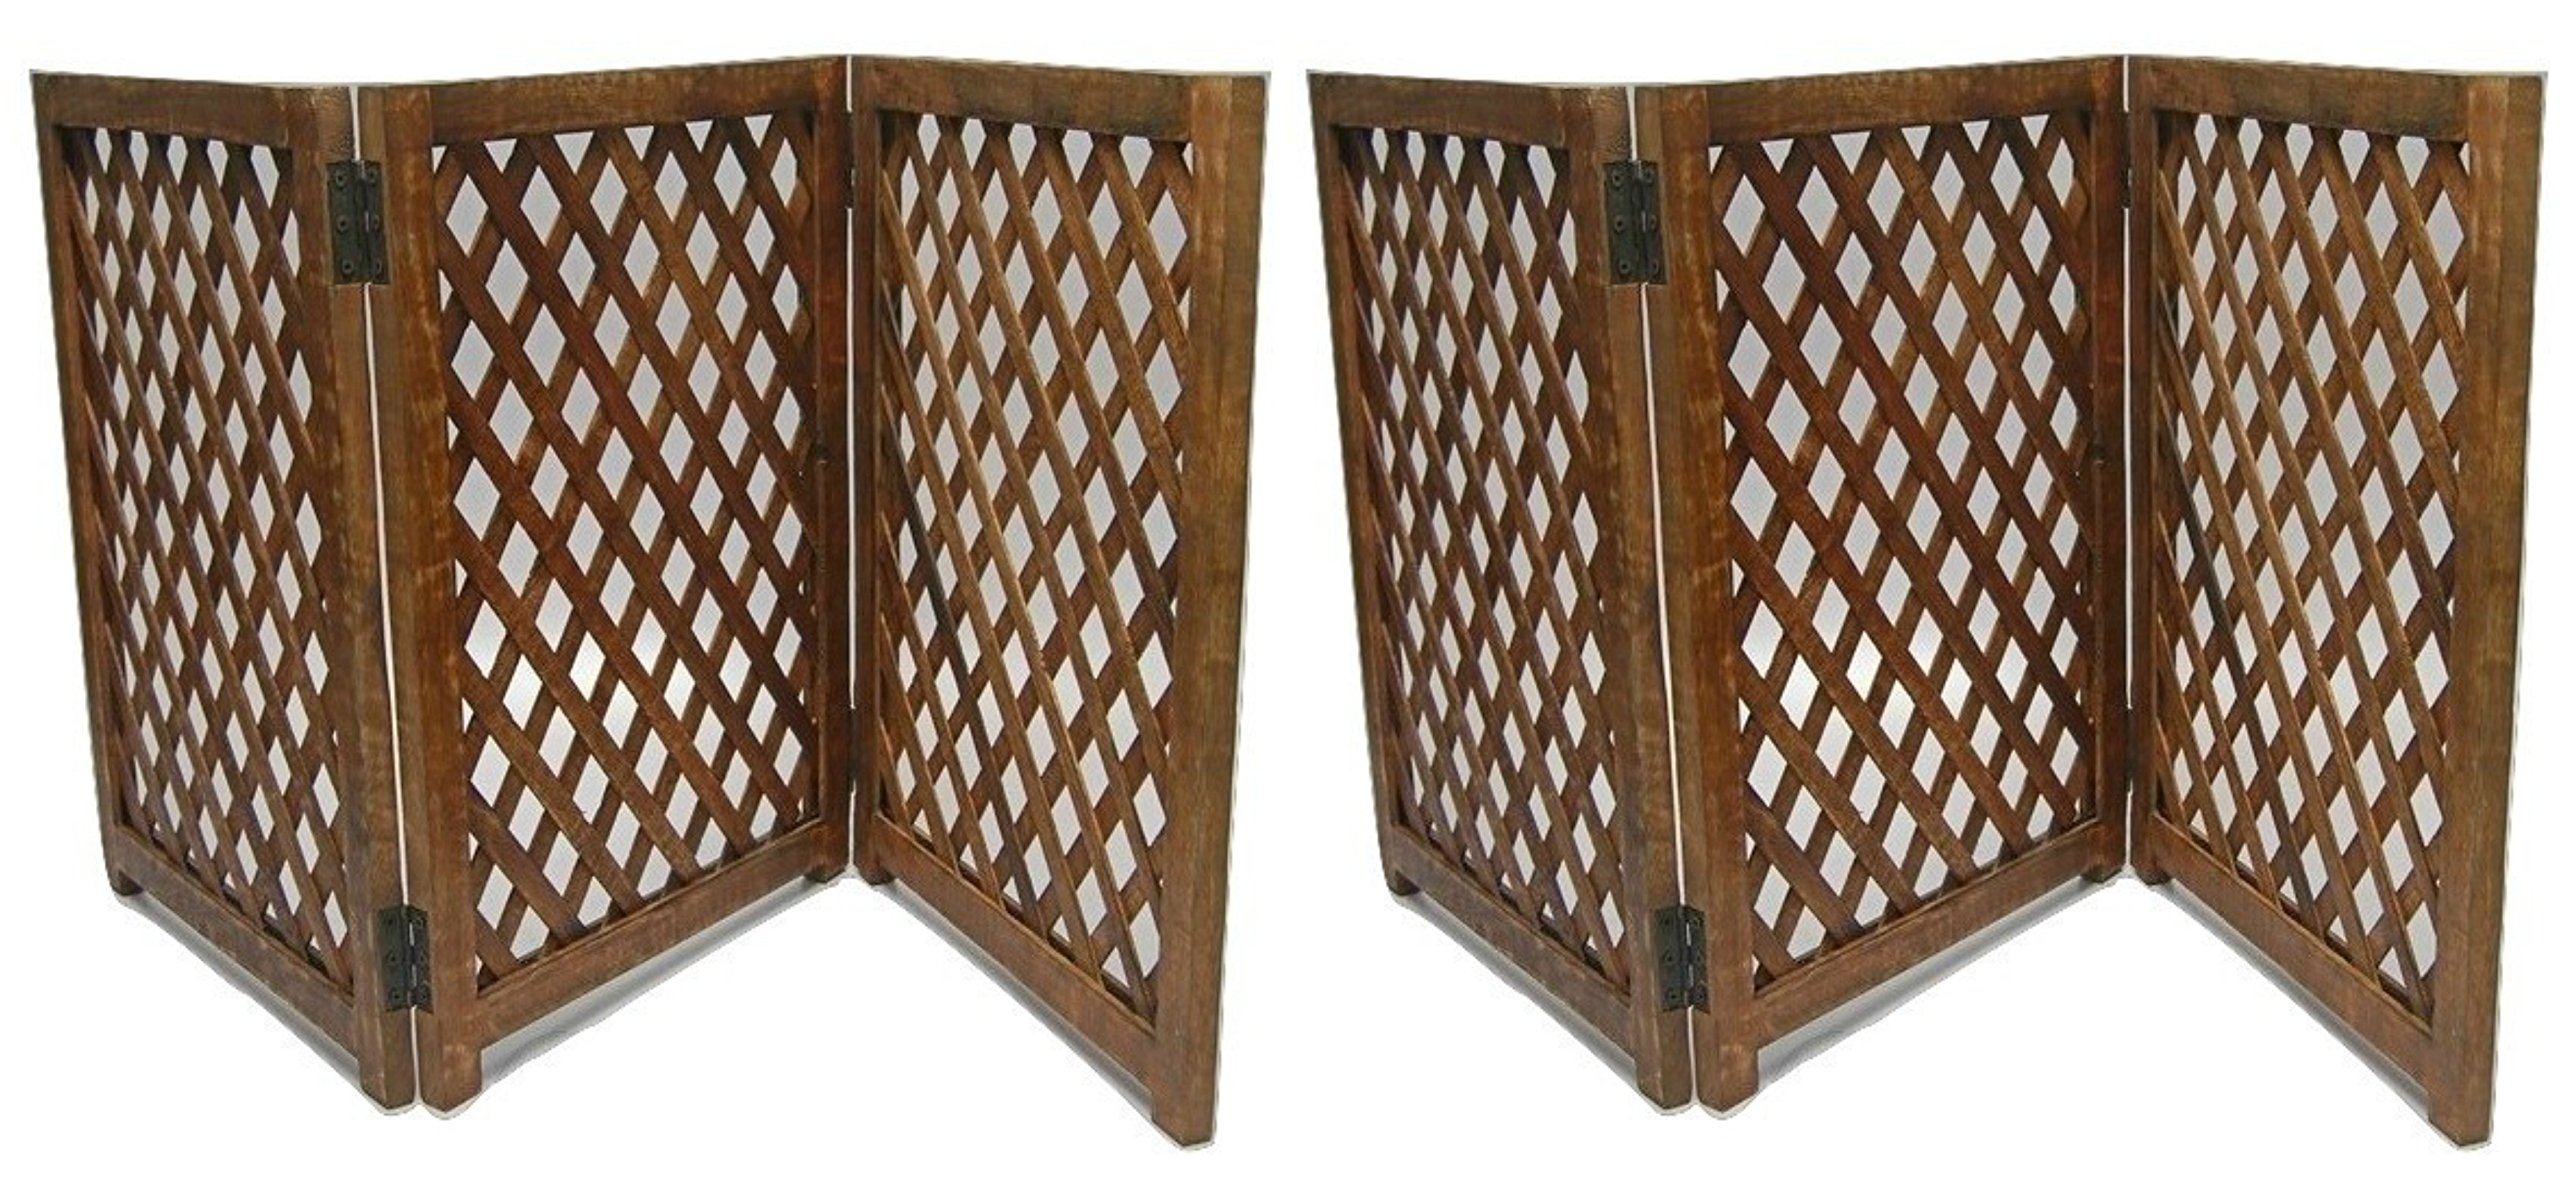 Urnporium Mango Wood 3 Panel Strong and Durable Pet Gates, Set of 2 by Urnporium